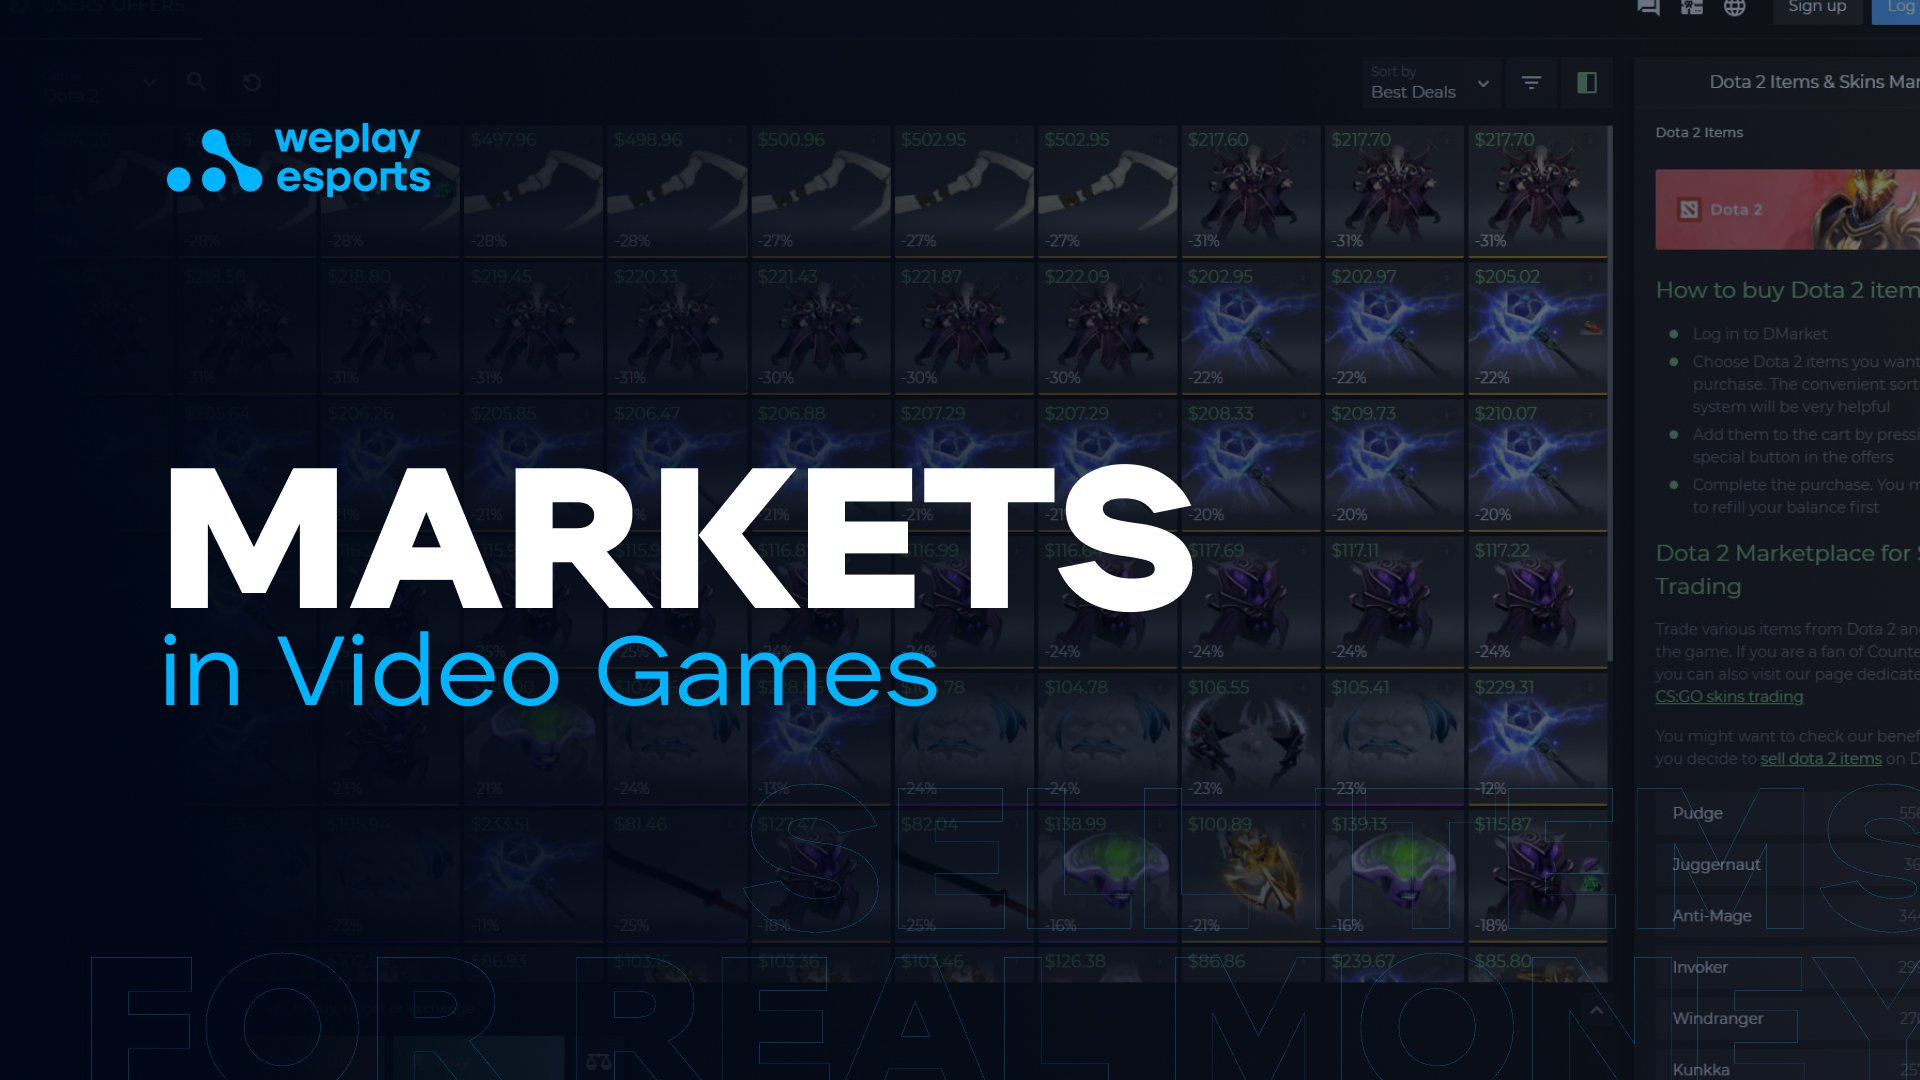 Markets in Video Games